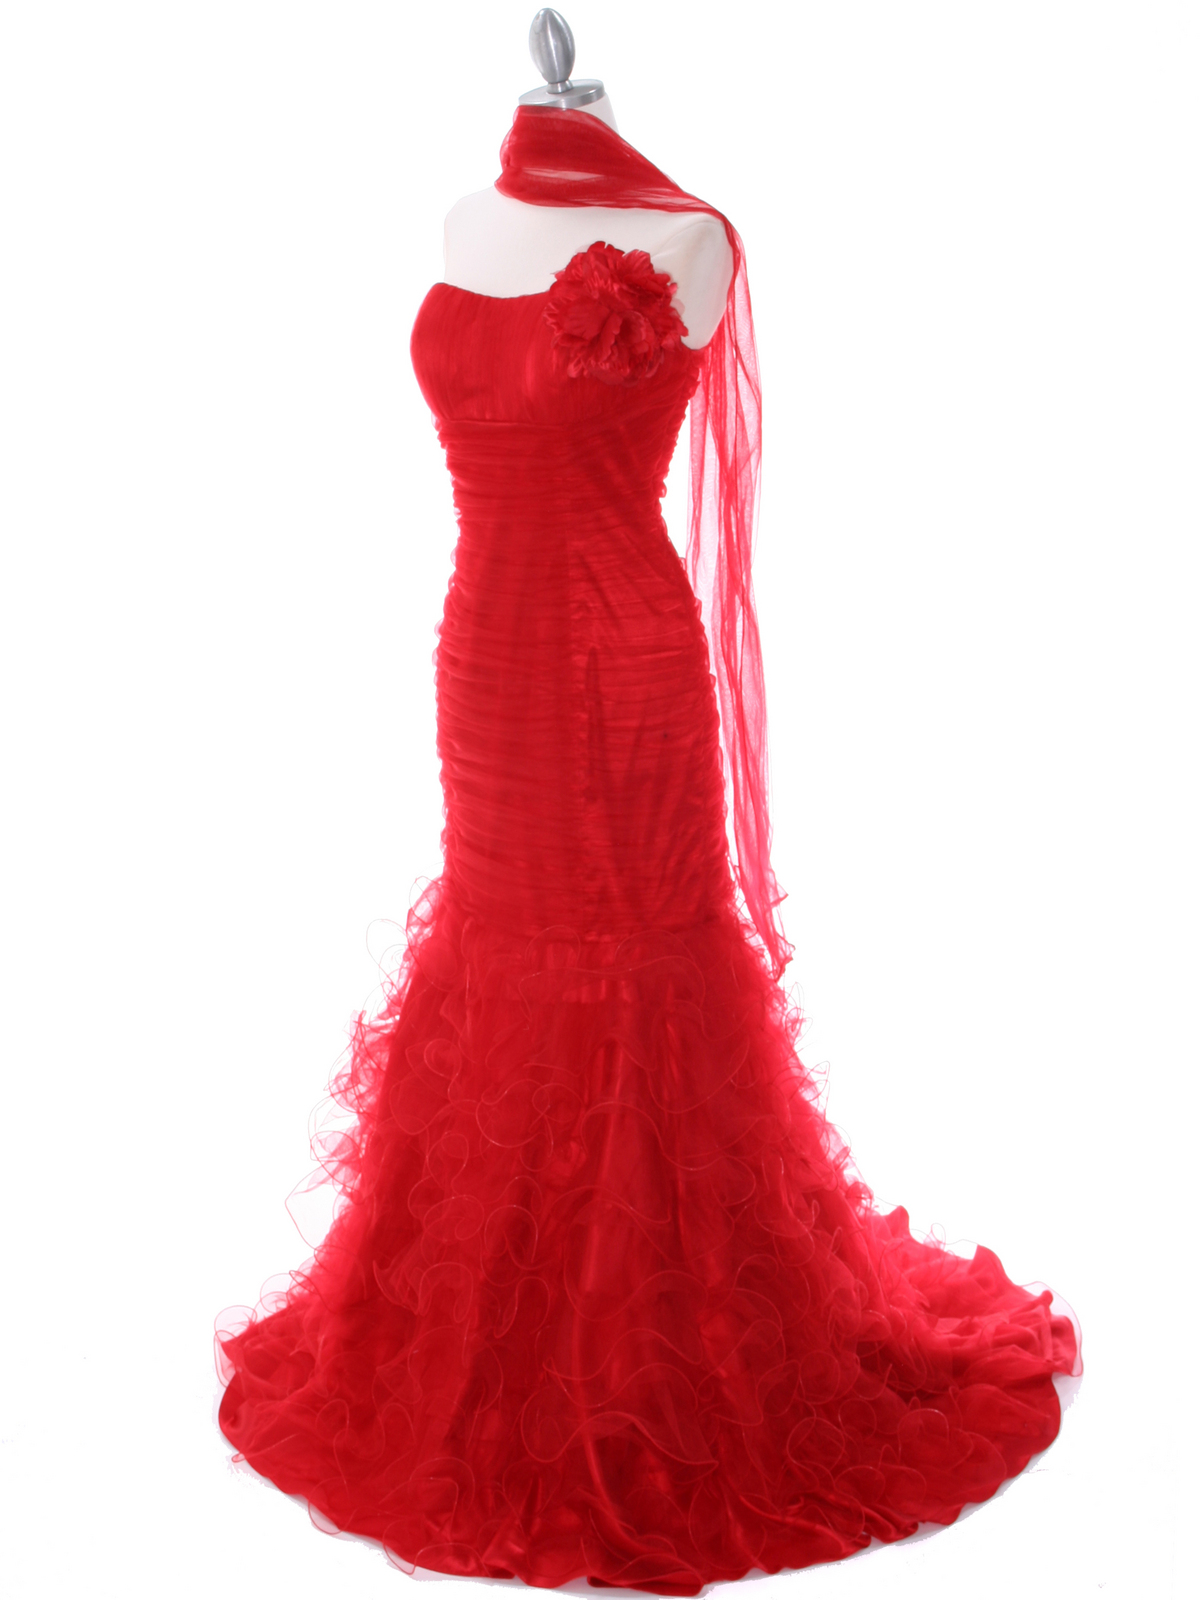 Red Lace Prom Dress | Sung Boutique L.A.